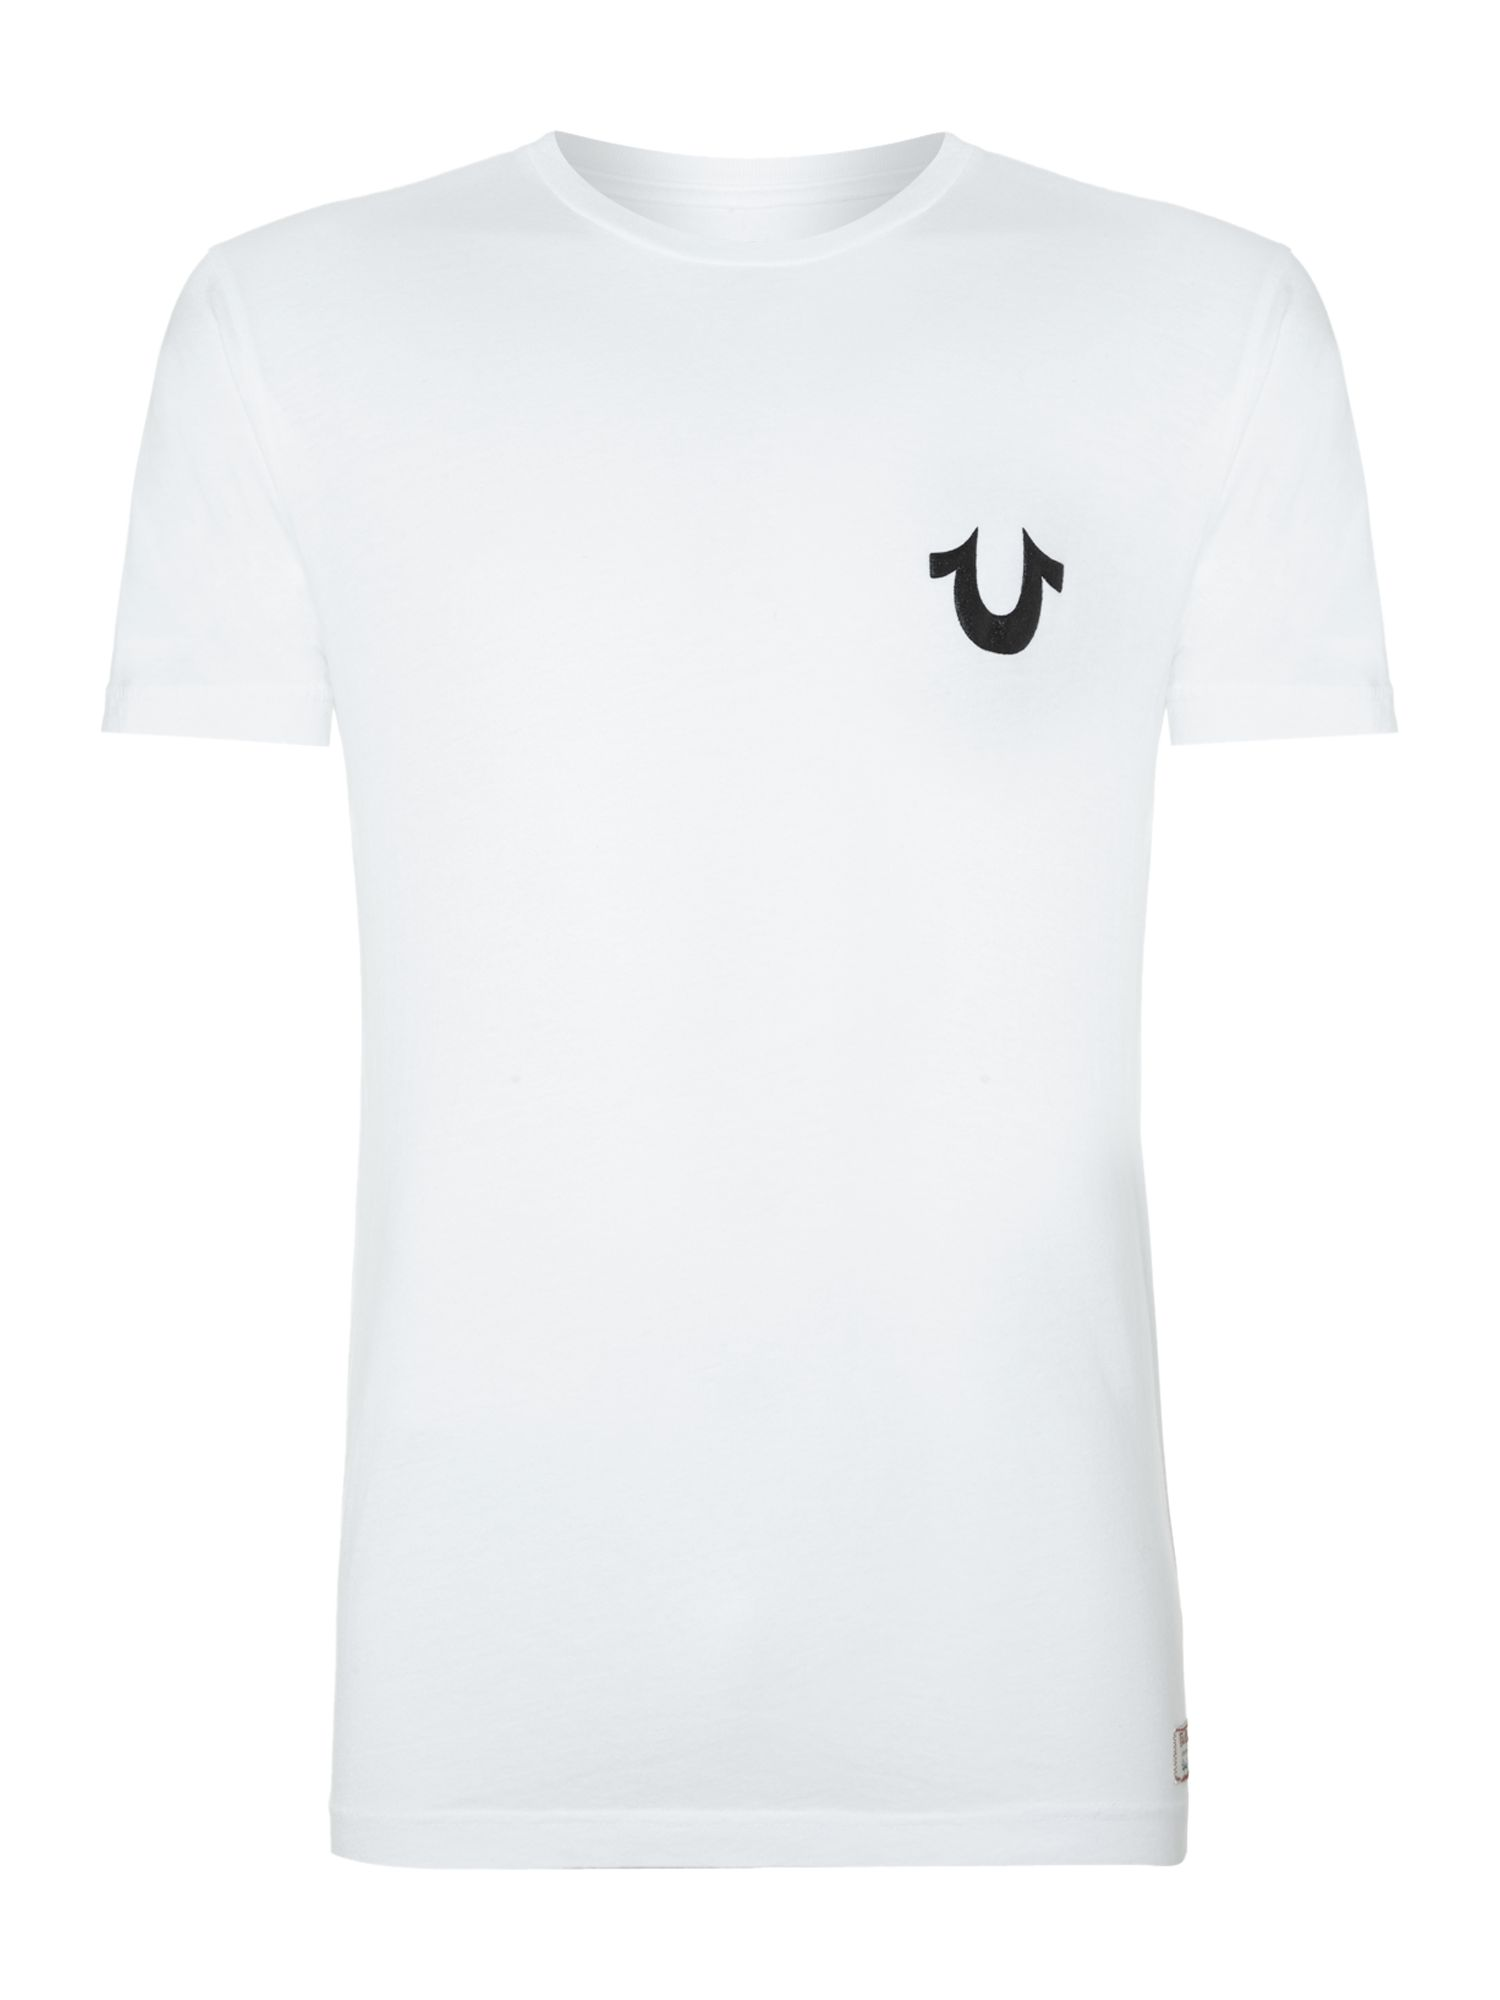 Buff logo t-shirt